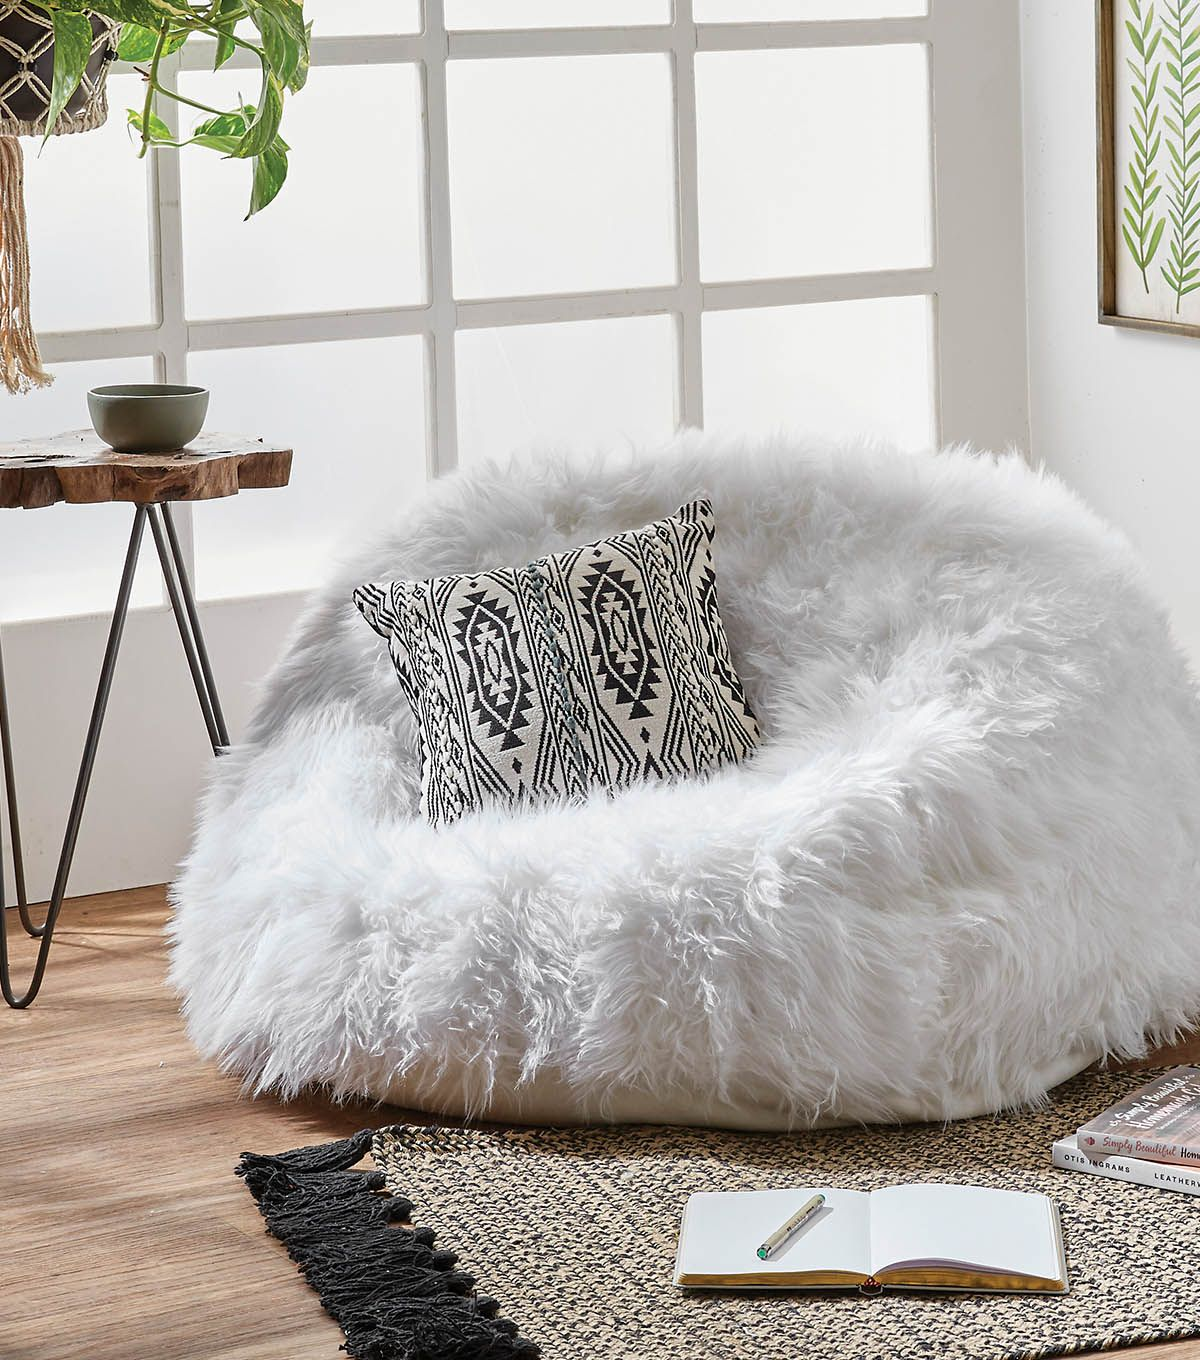 How To Make A Faux Fur Bean Bag Chair Directions Bean Bag Chair Fur Bean Bag Faux Fur Bean Bag